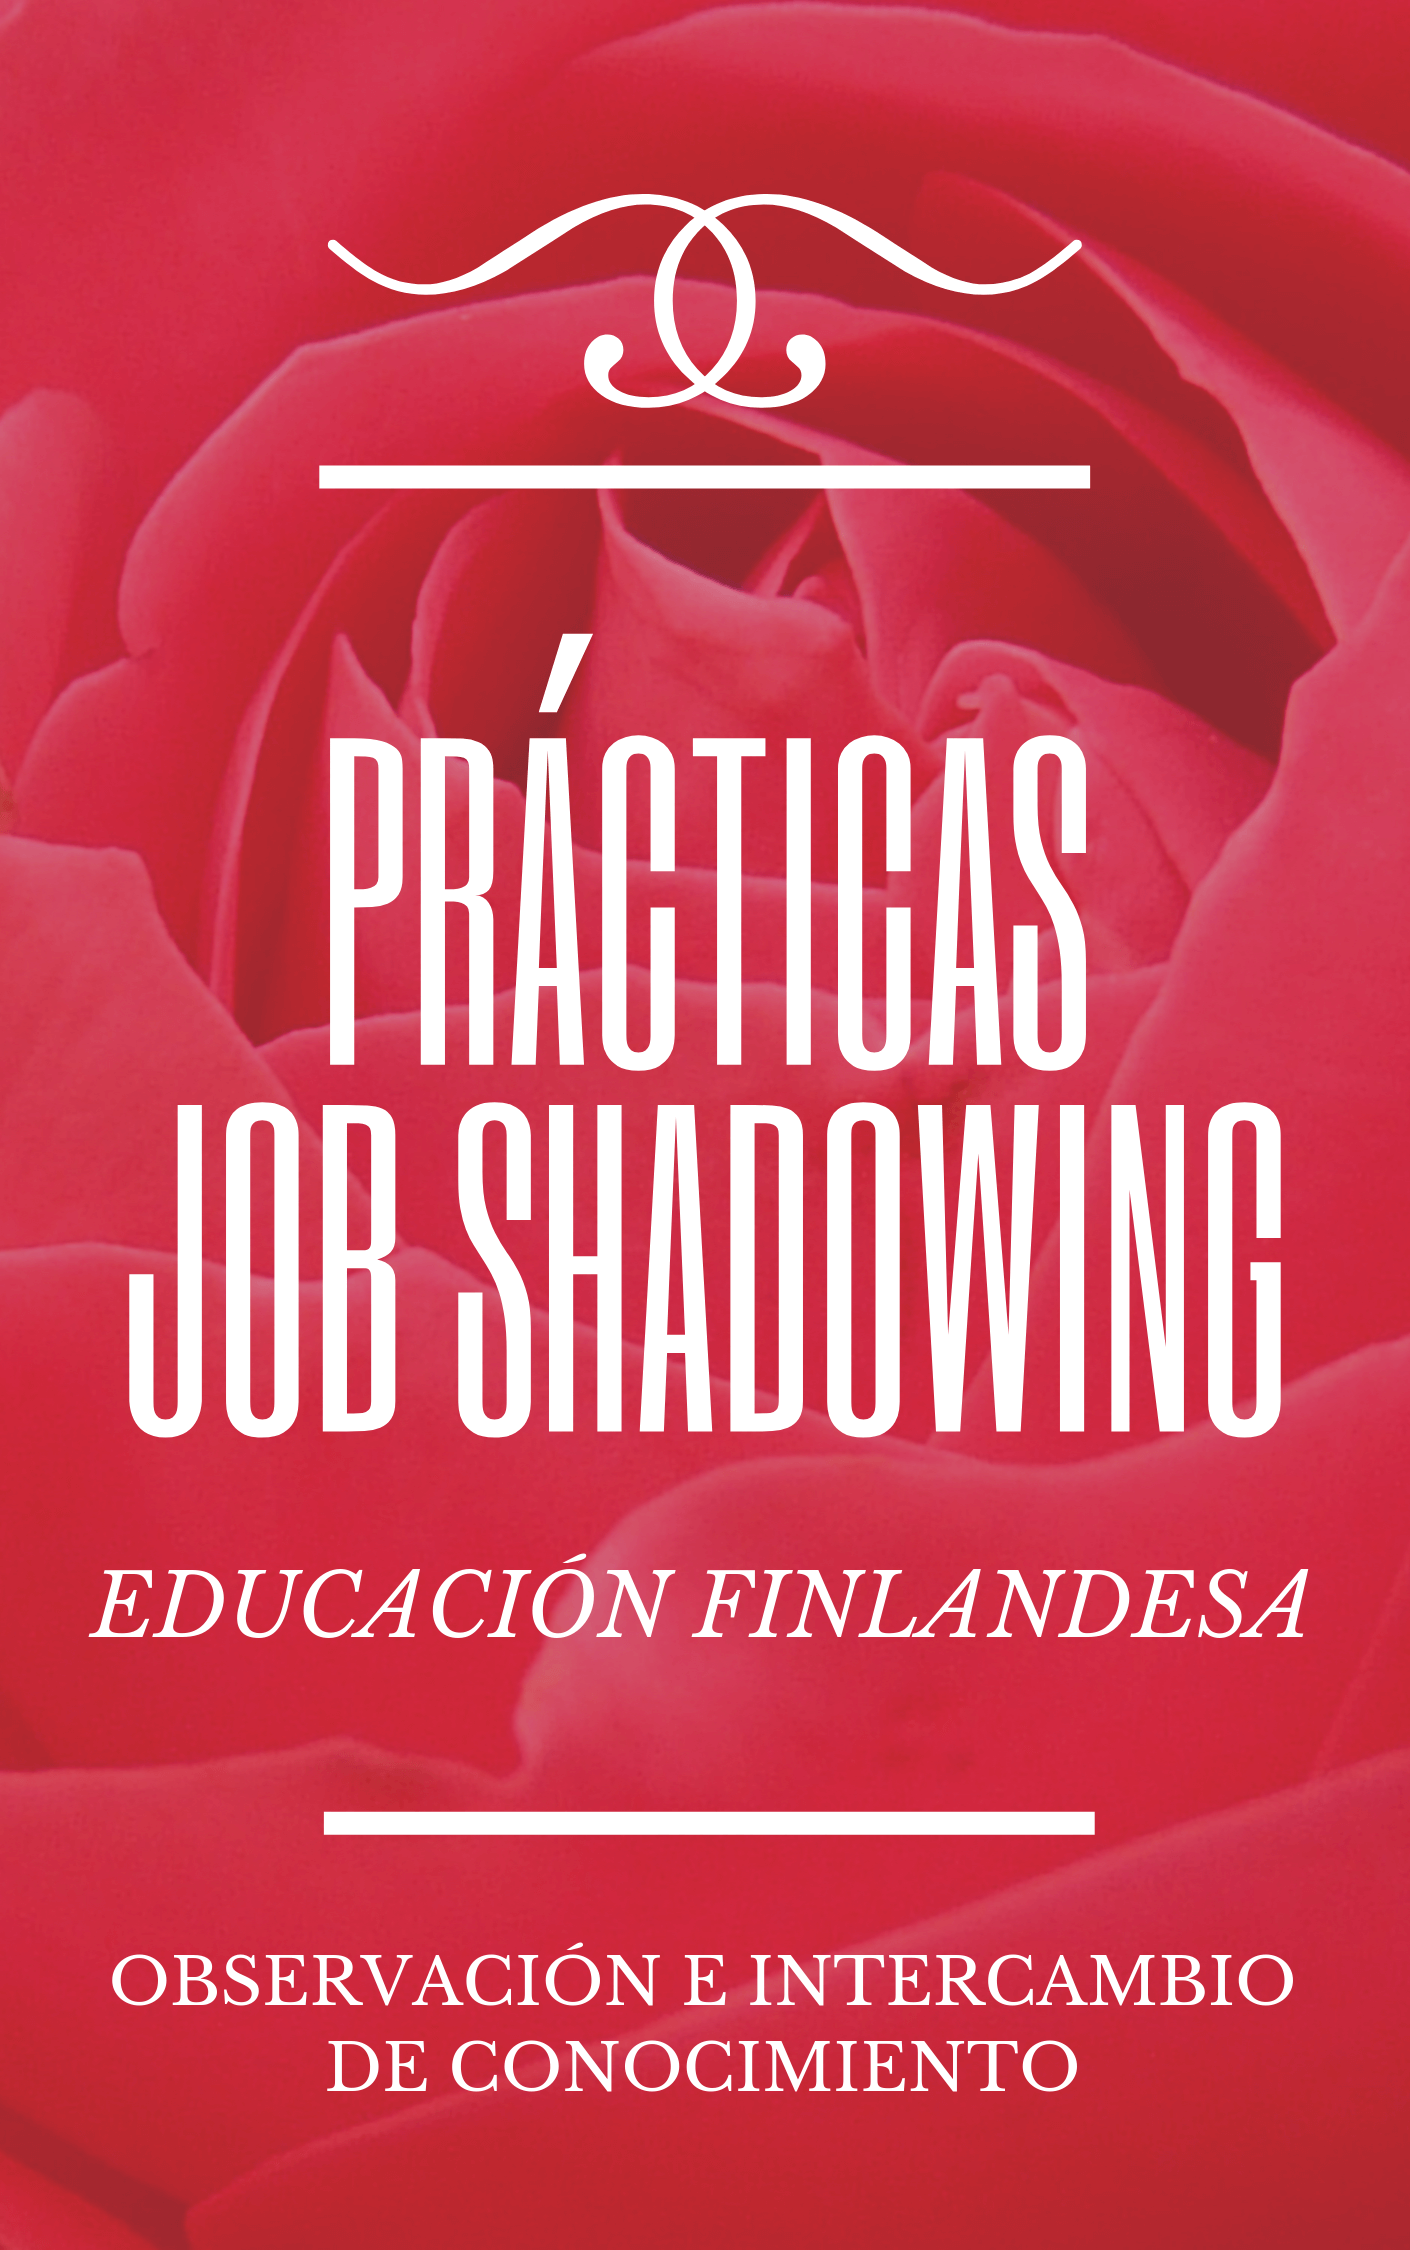 PRÁTICAS JOB SHADOWING